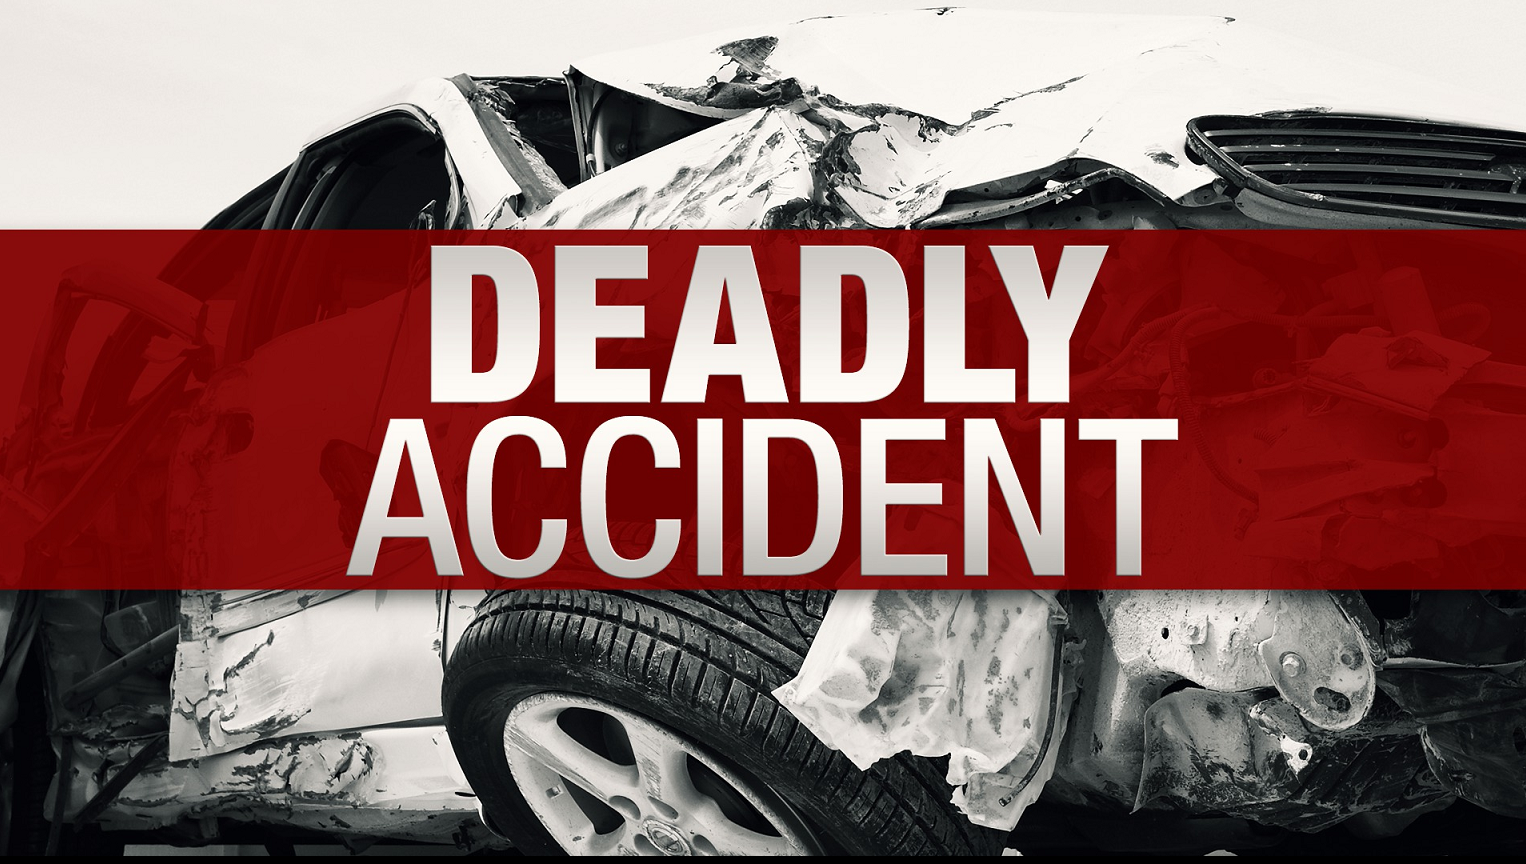 deadly accident_166045